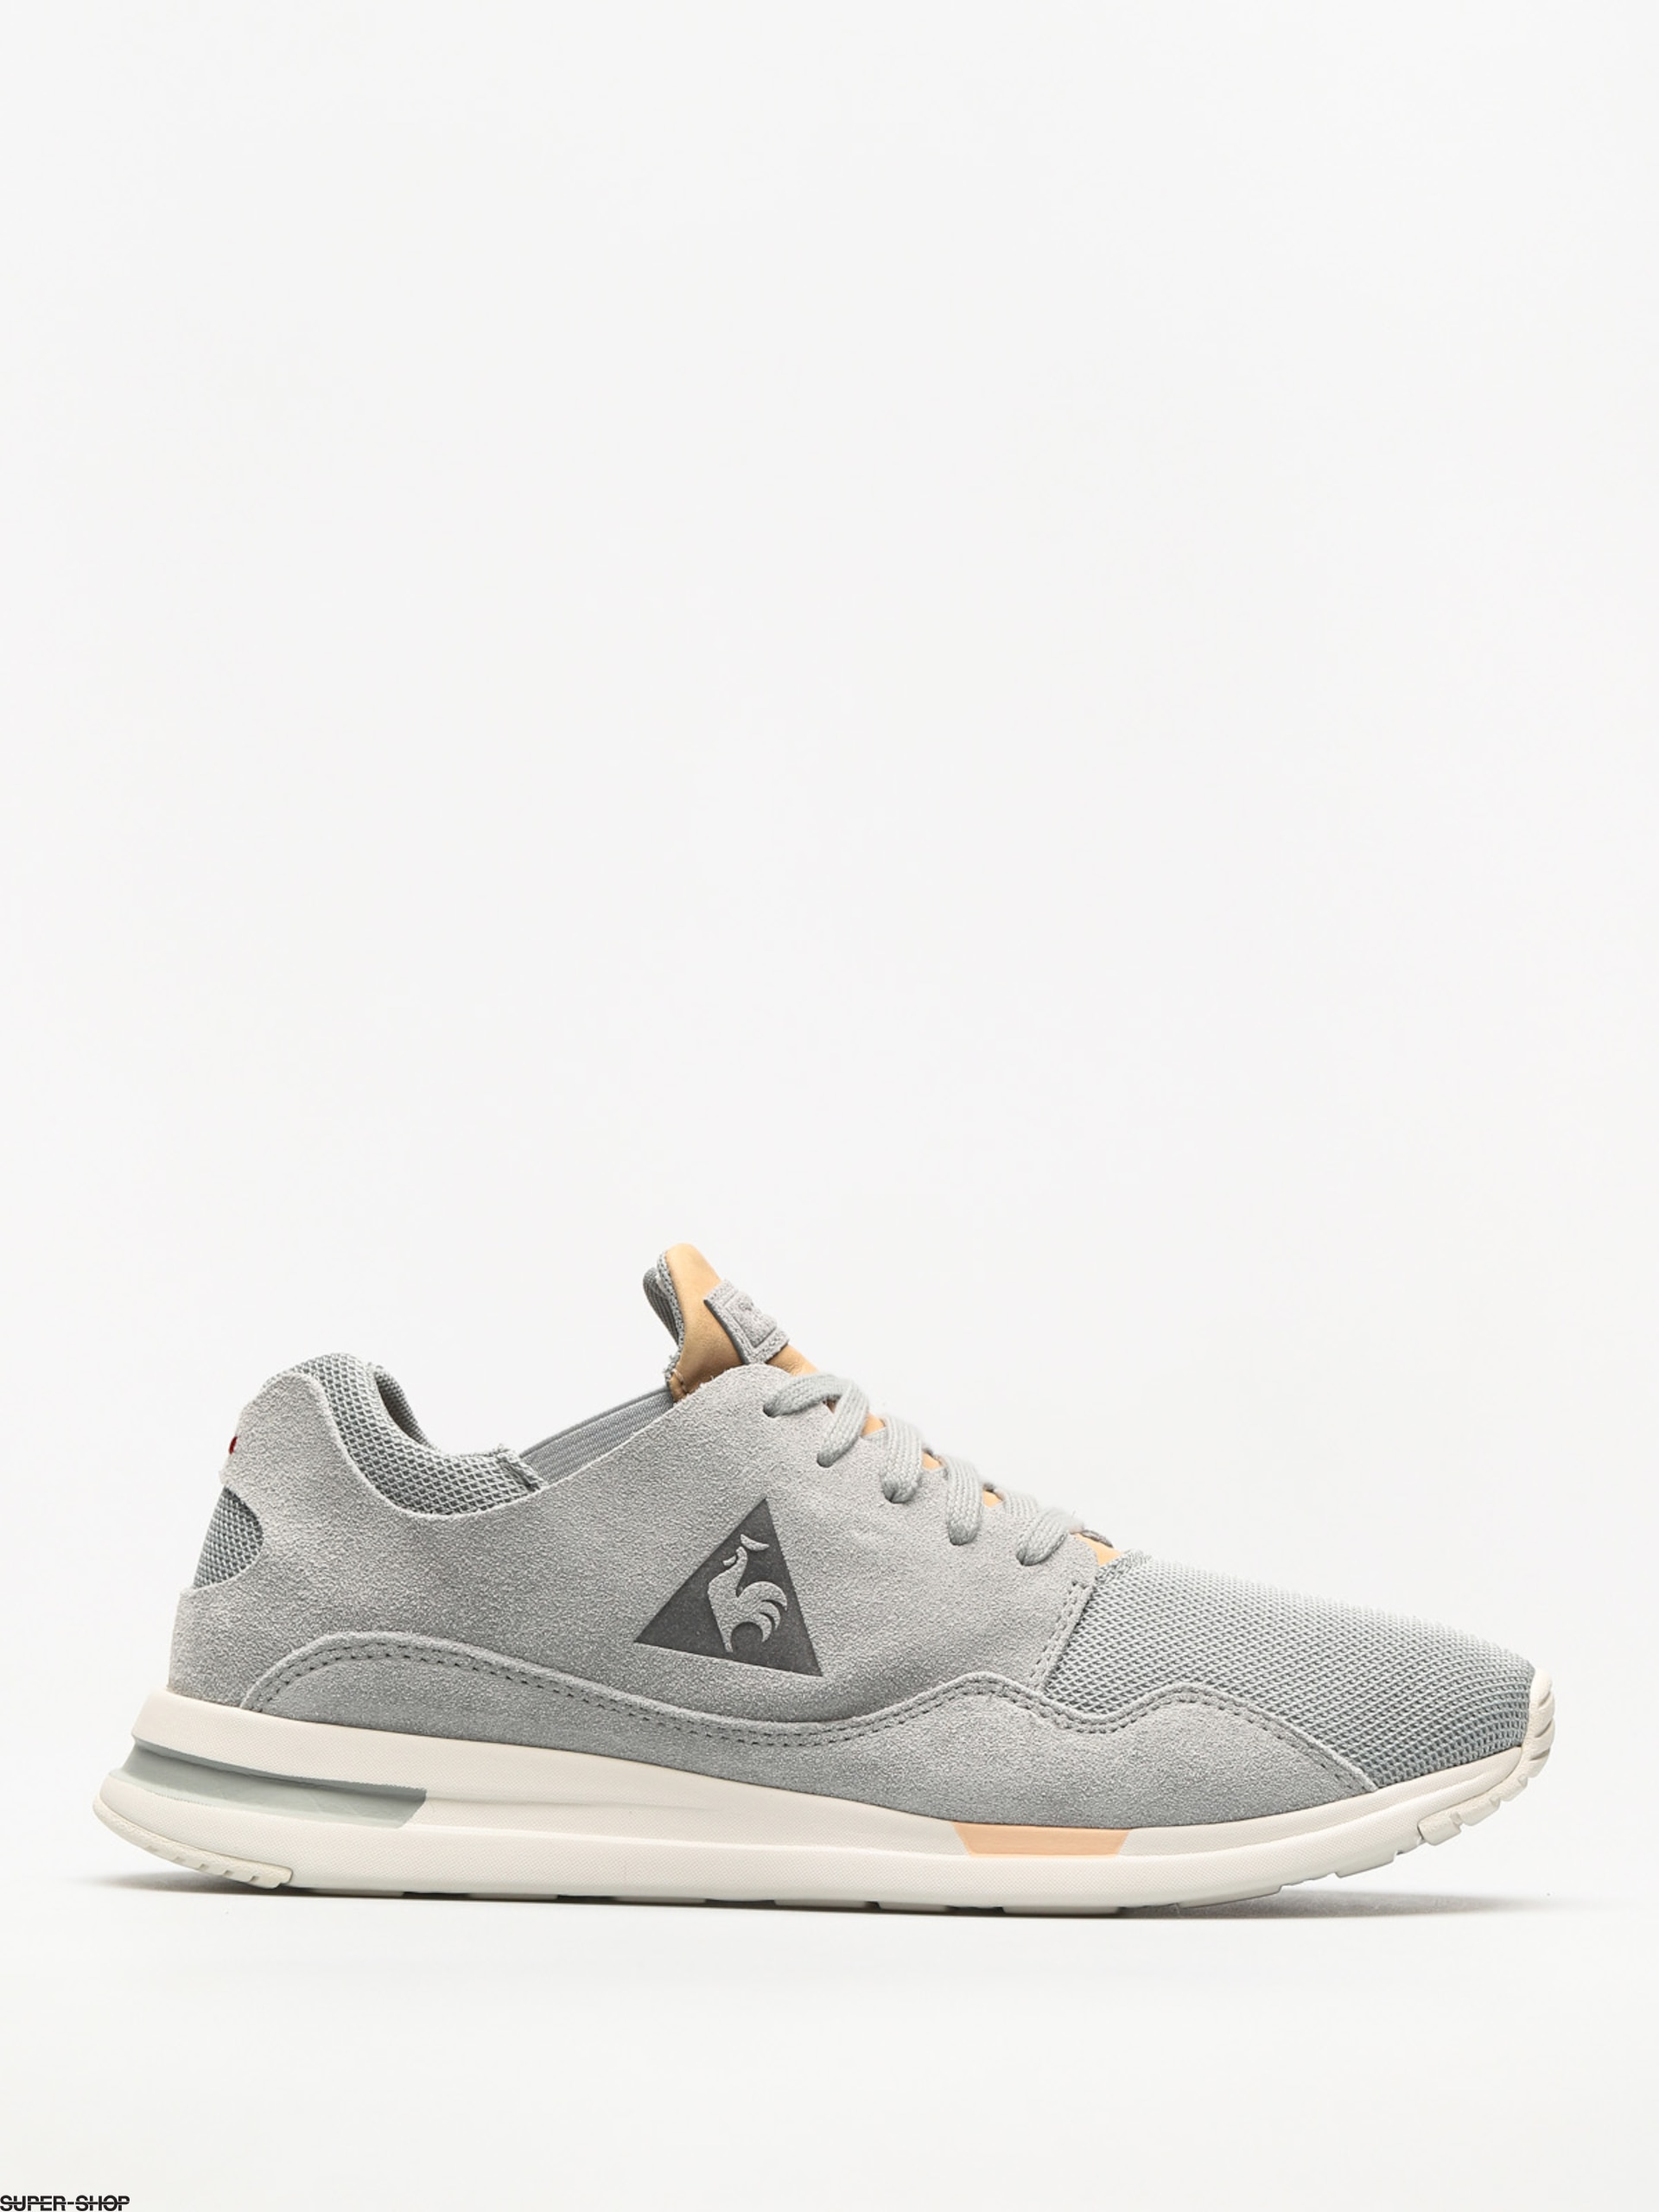 Le Coq Sportif Shoes Lcs R Pure Suede/Tech Mesh